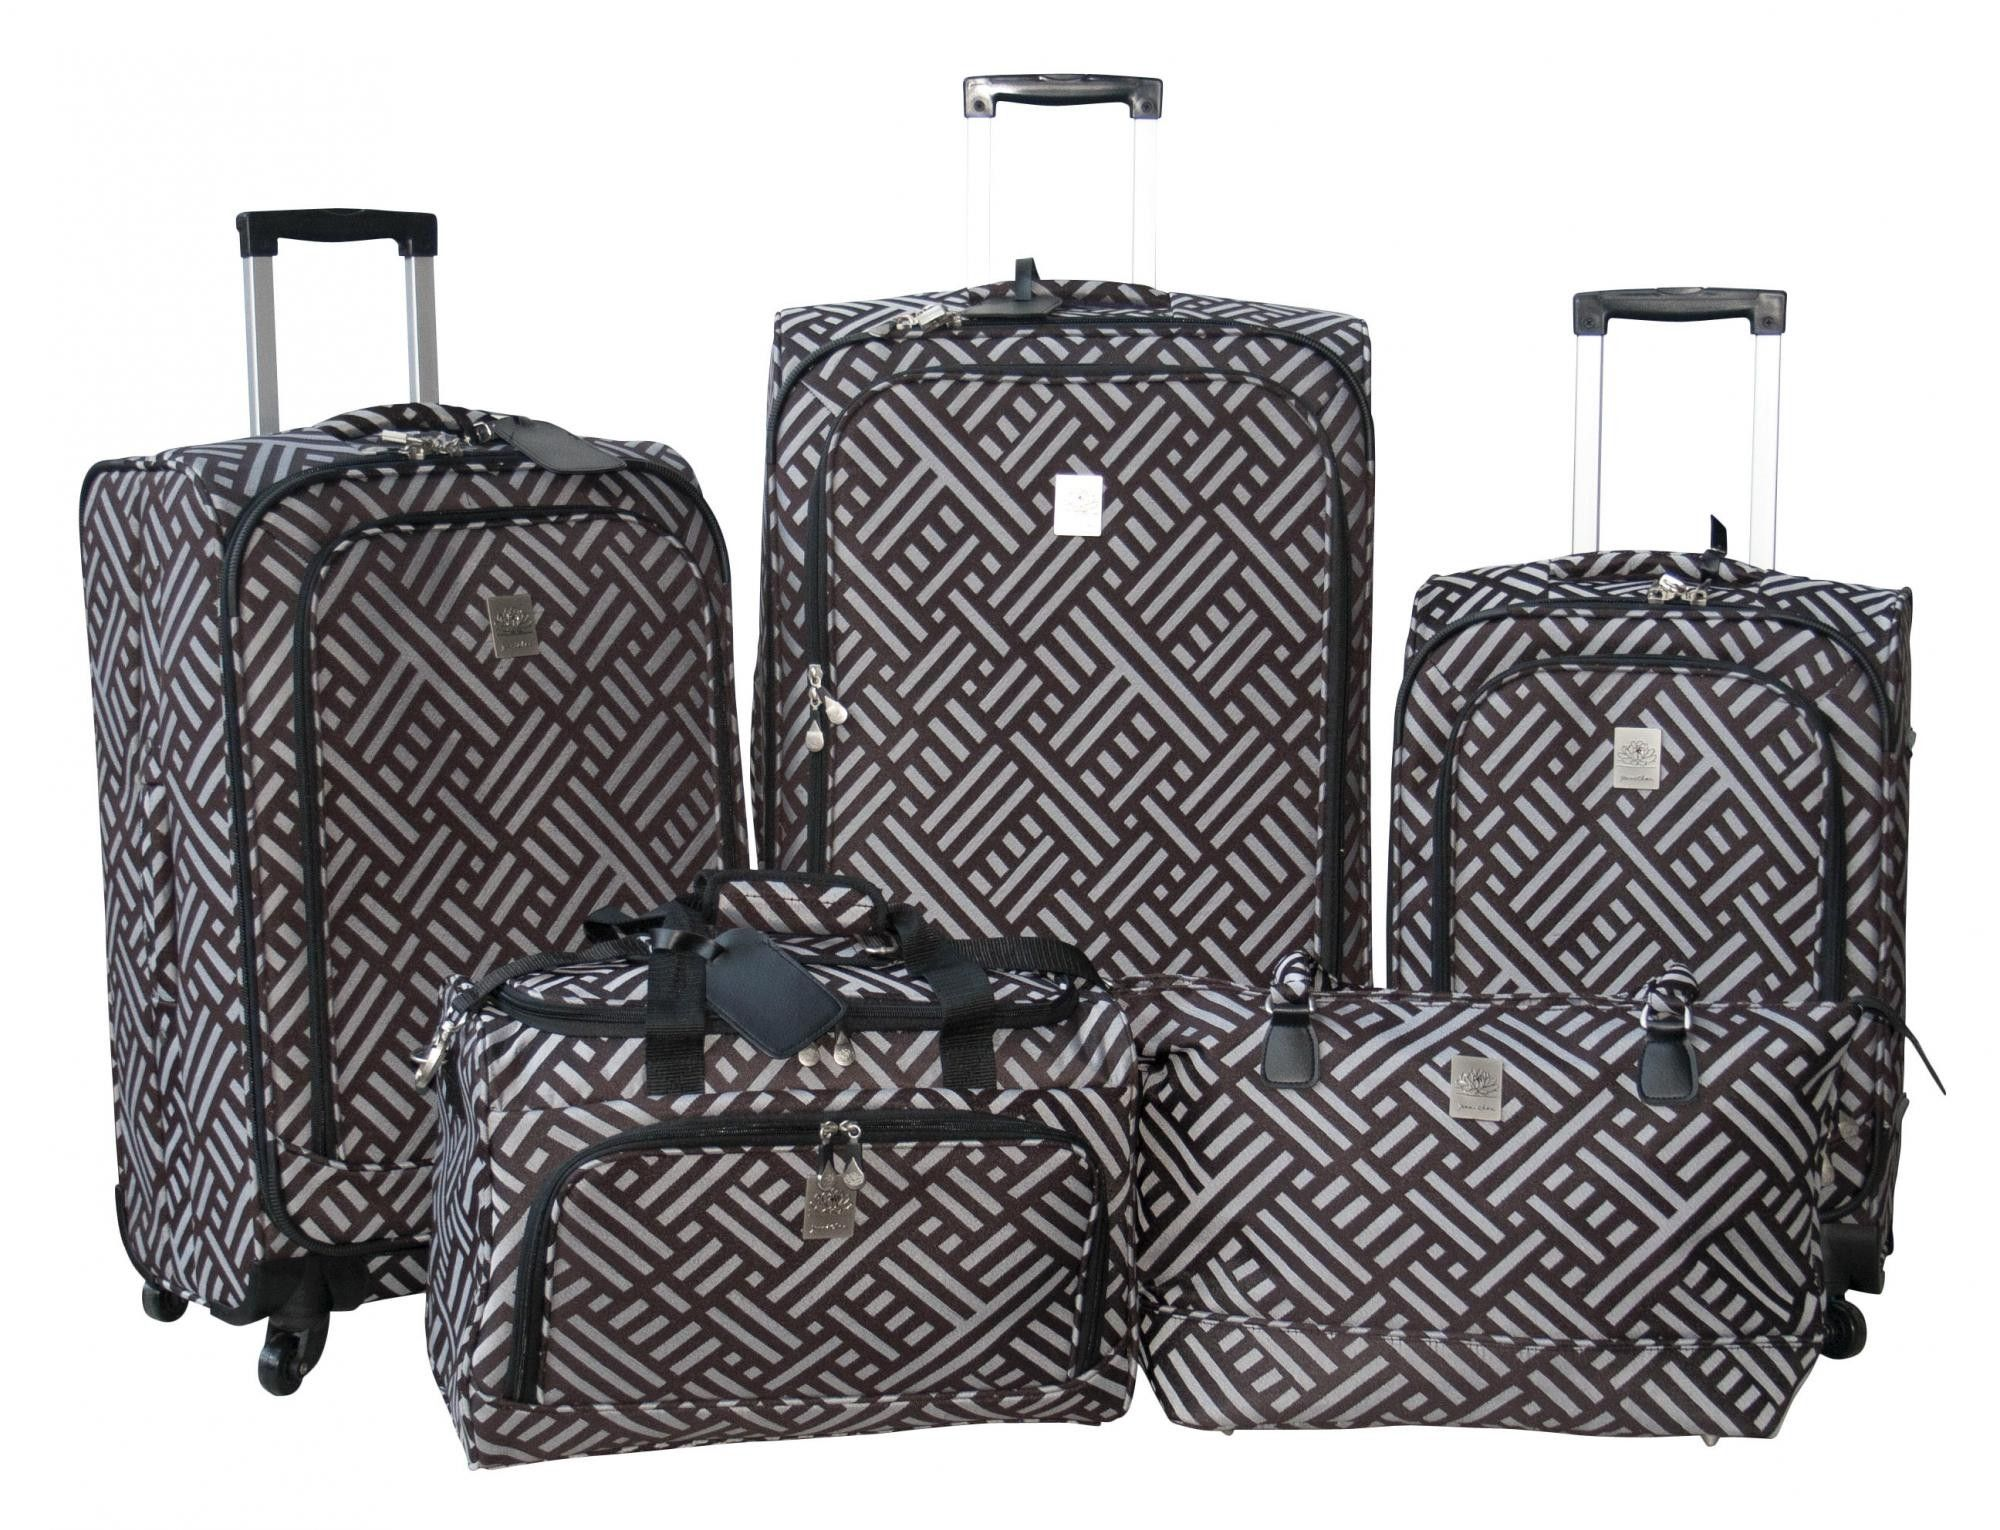 Designer Luggage Sets | Luggage | Pinterest | Designer luggage, UX ...